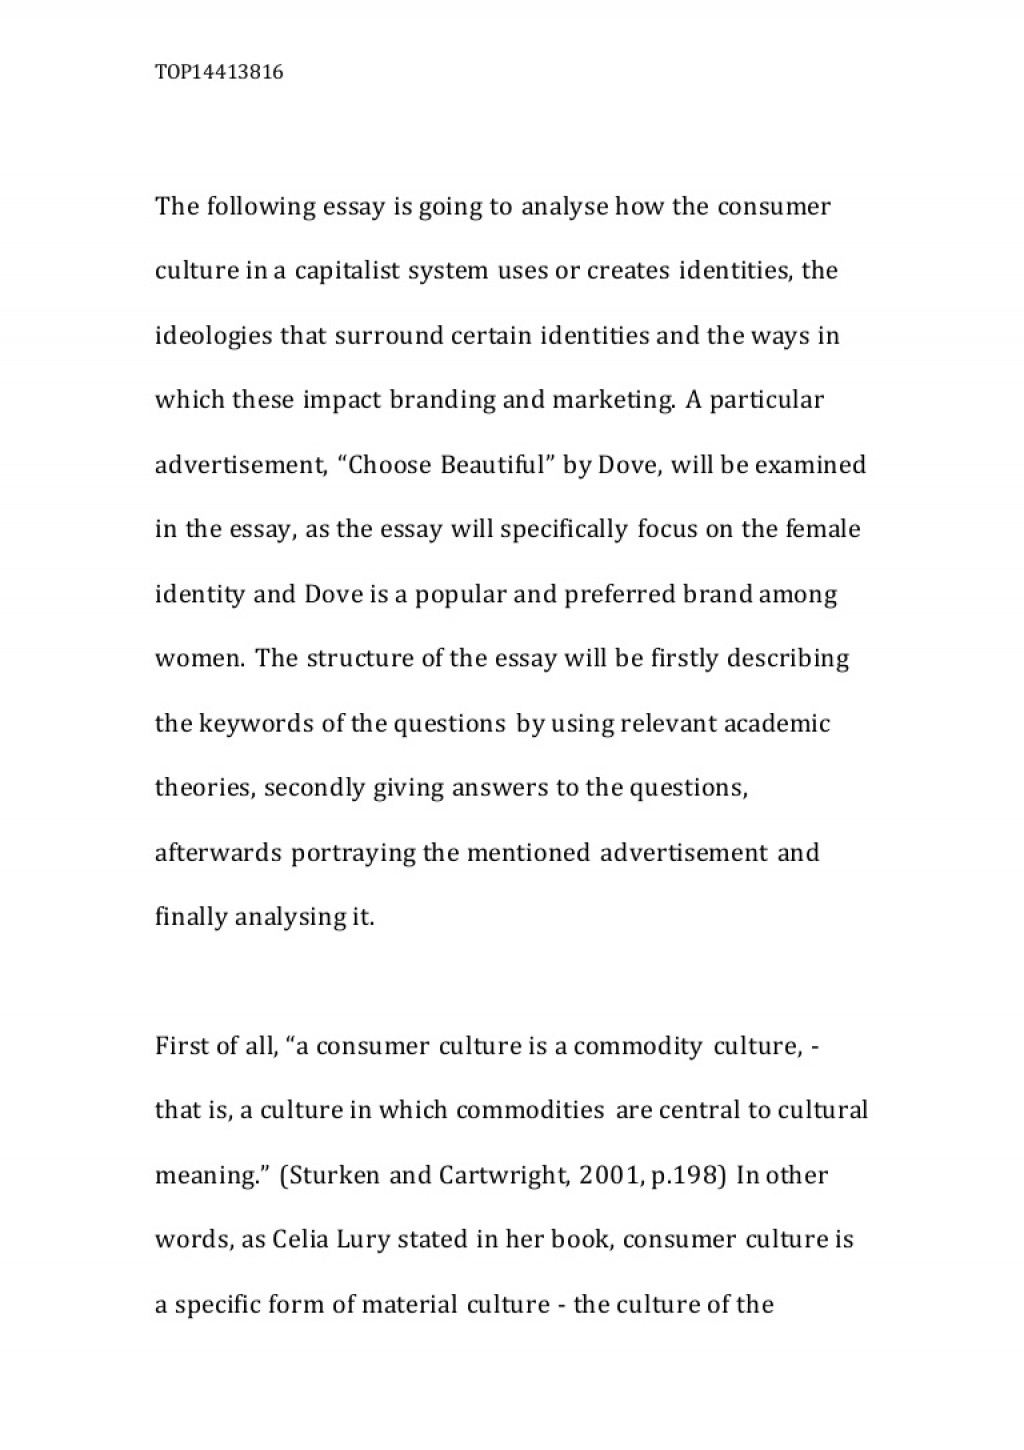 003 Lva1 App6892 Thumbnail Essay About Culture Dreaded On Indian And Society Celebrating Arts Through Reading Large